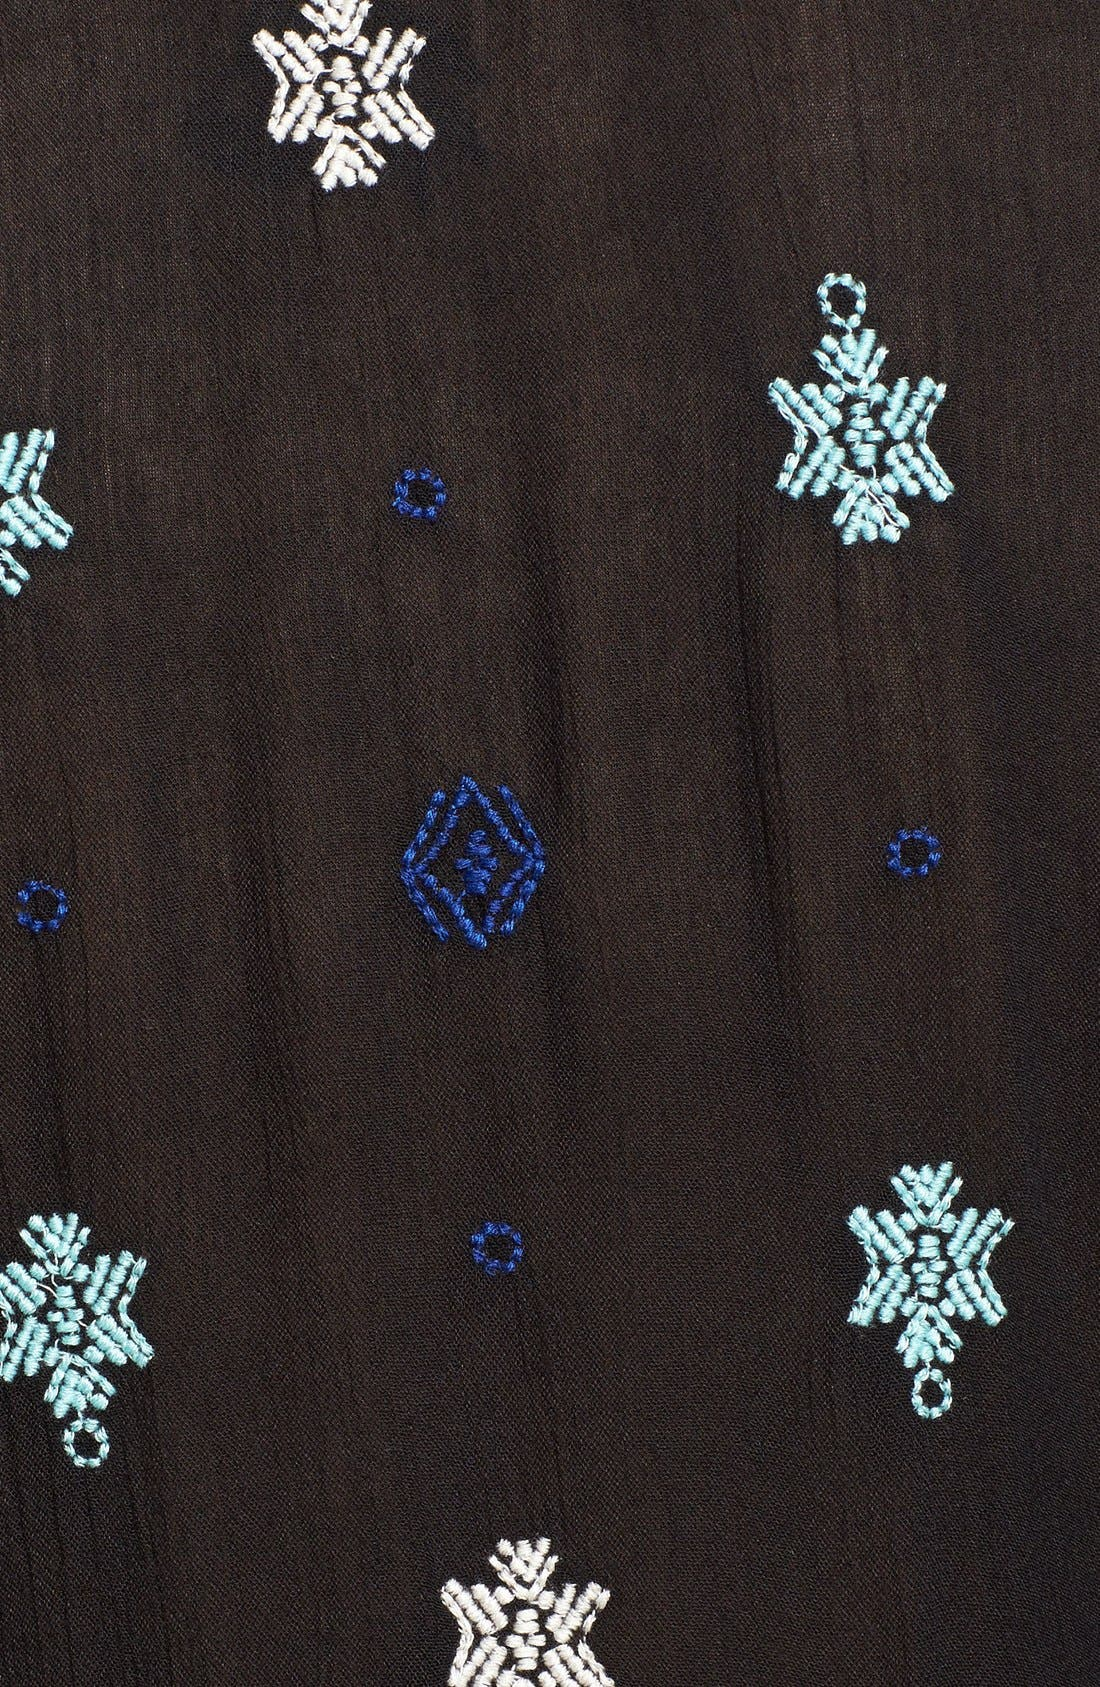 'Star Gazer' Embroidered Tunic Dress,                             Alternate thumbnail 3, color,                             001